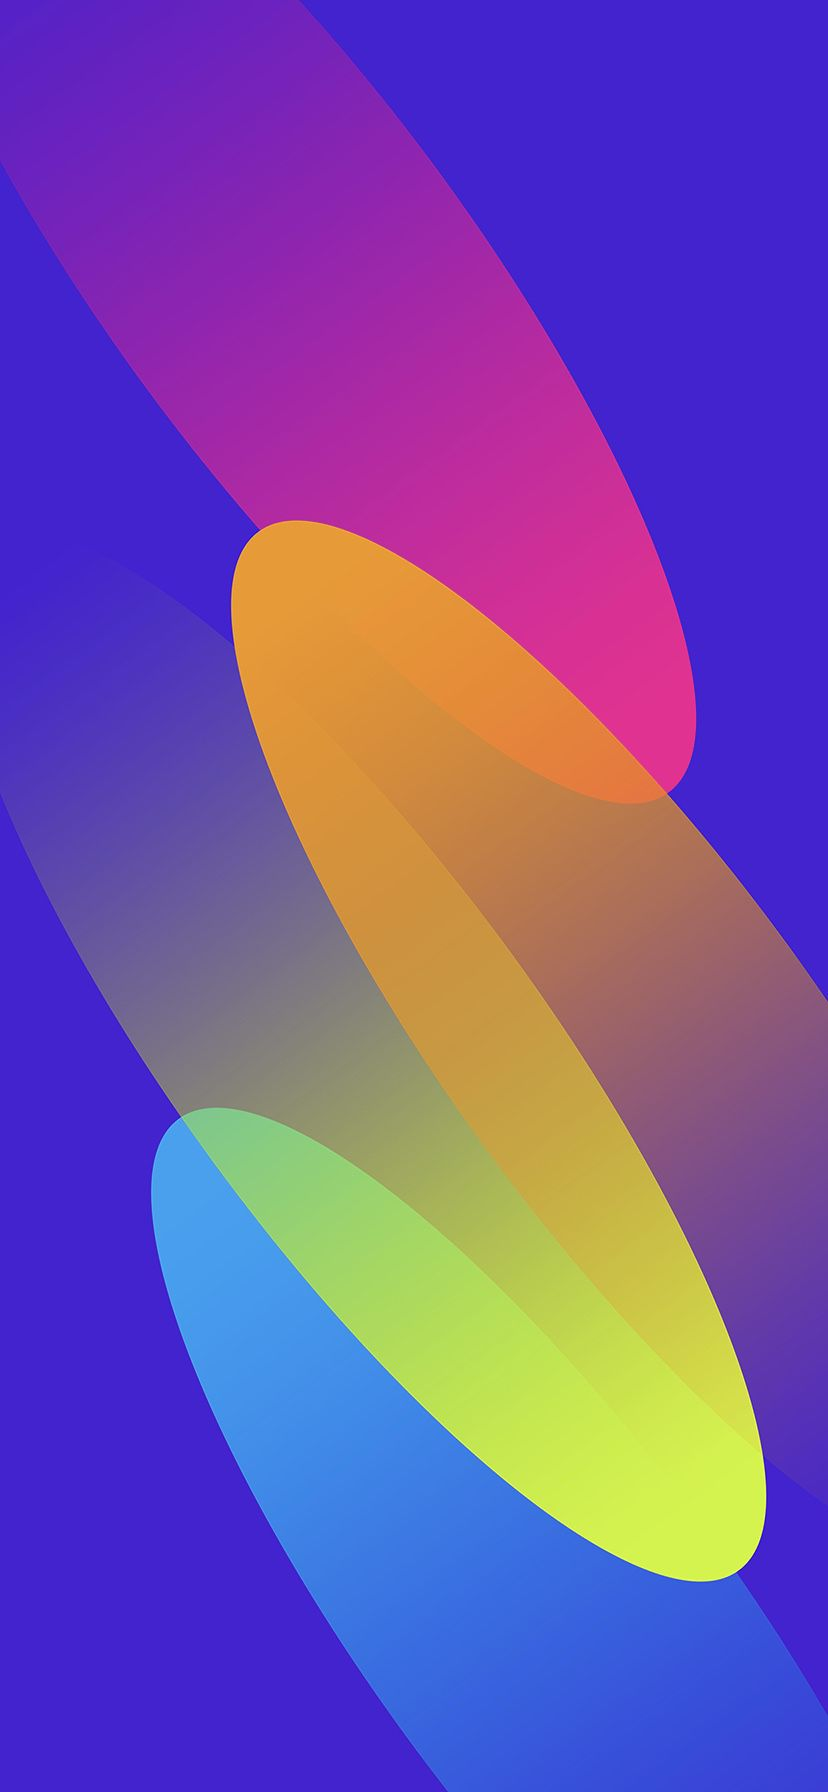 Iphone Xs Max Wallpaper Abstract Iphone Wallpaper